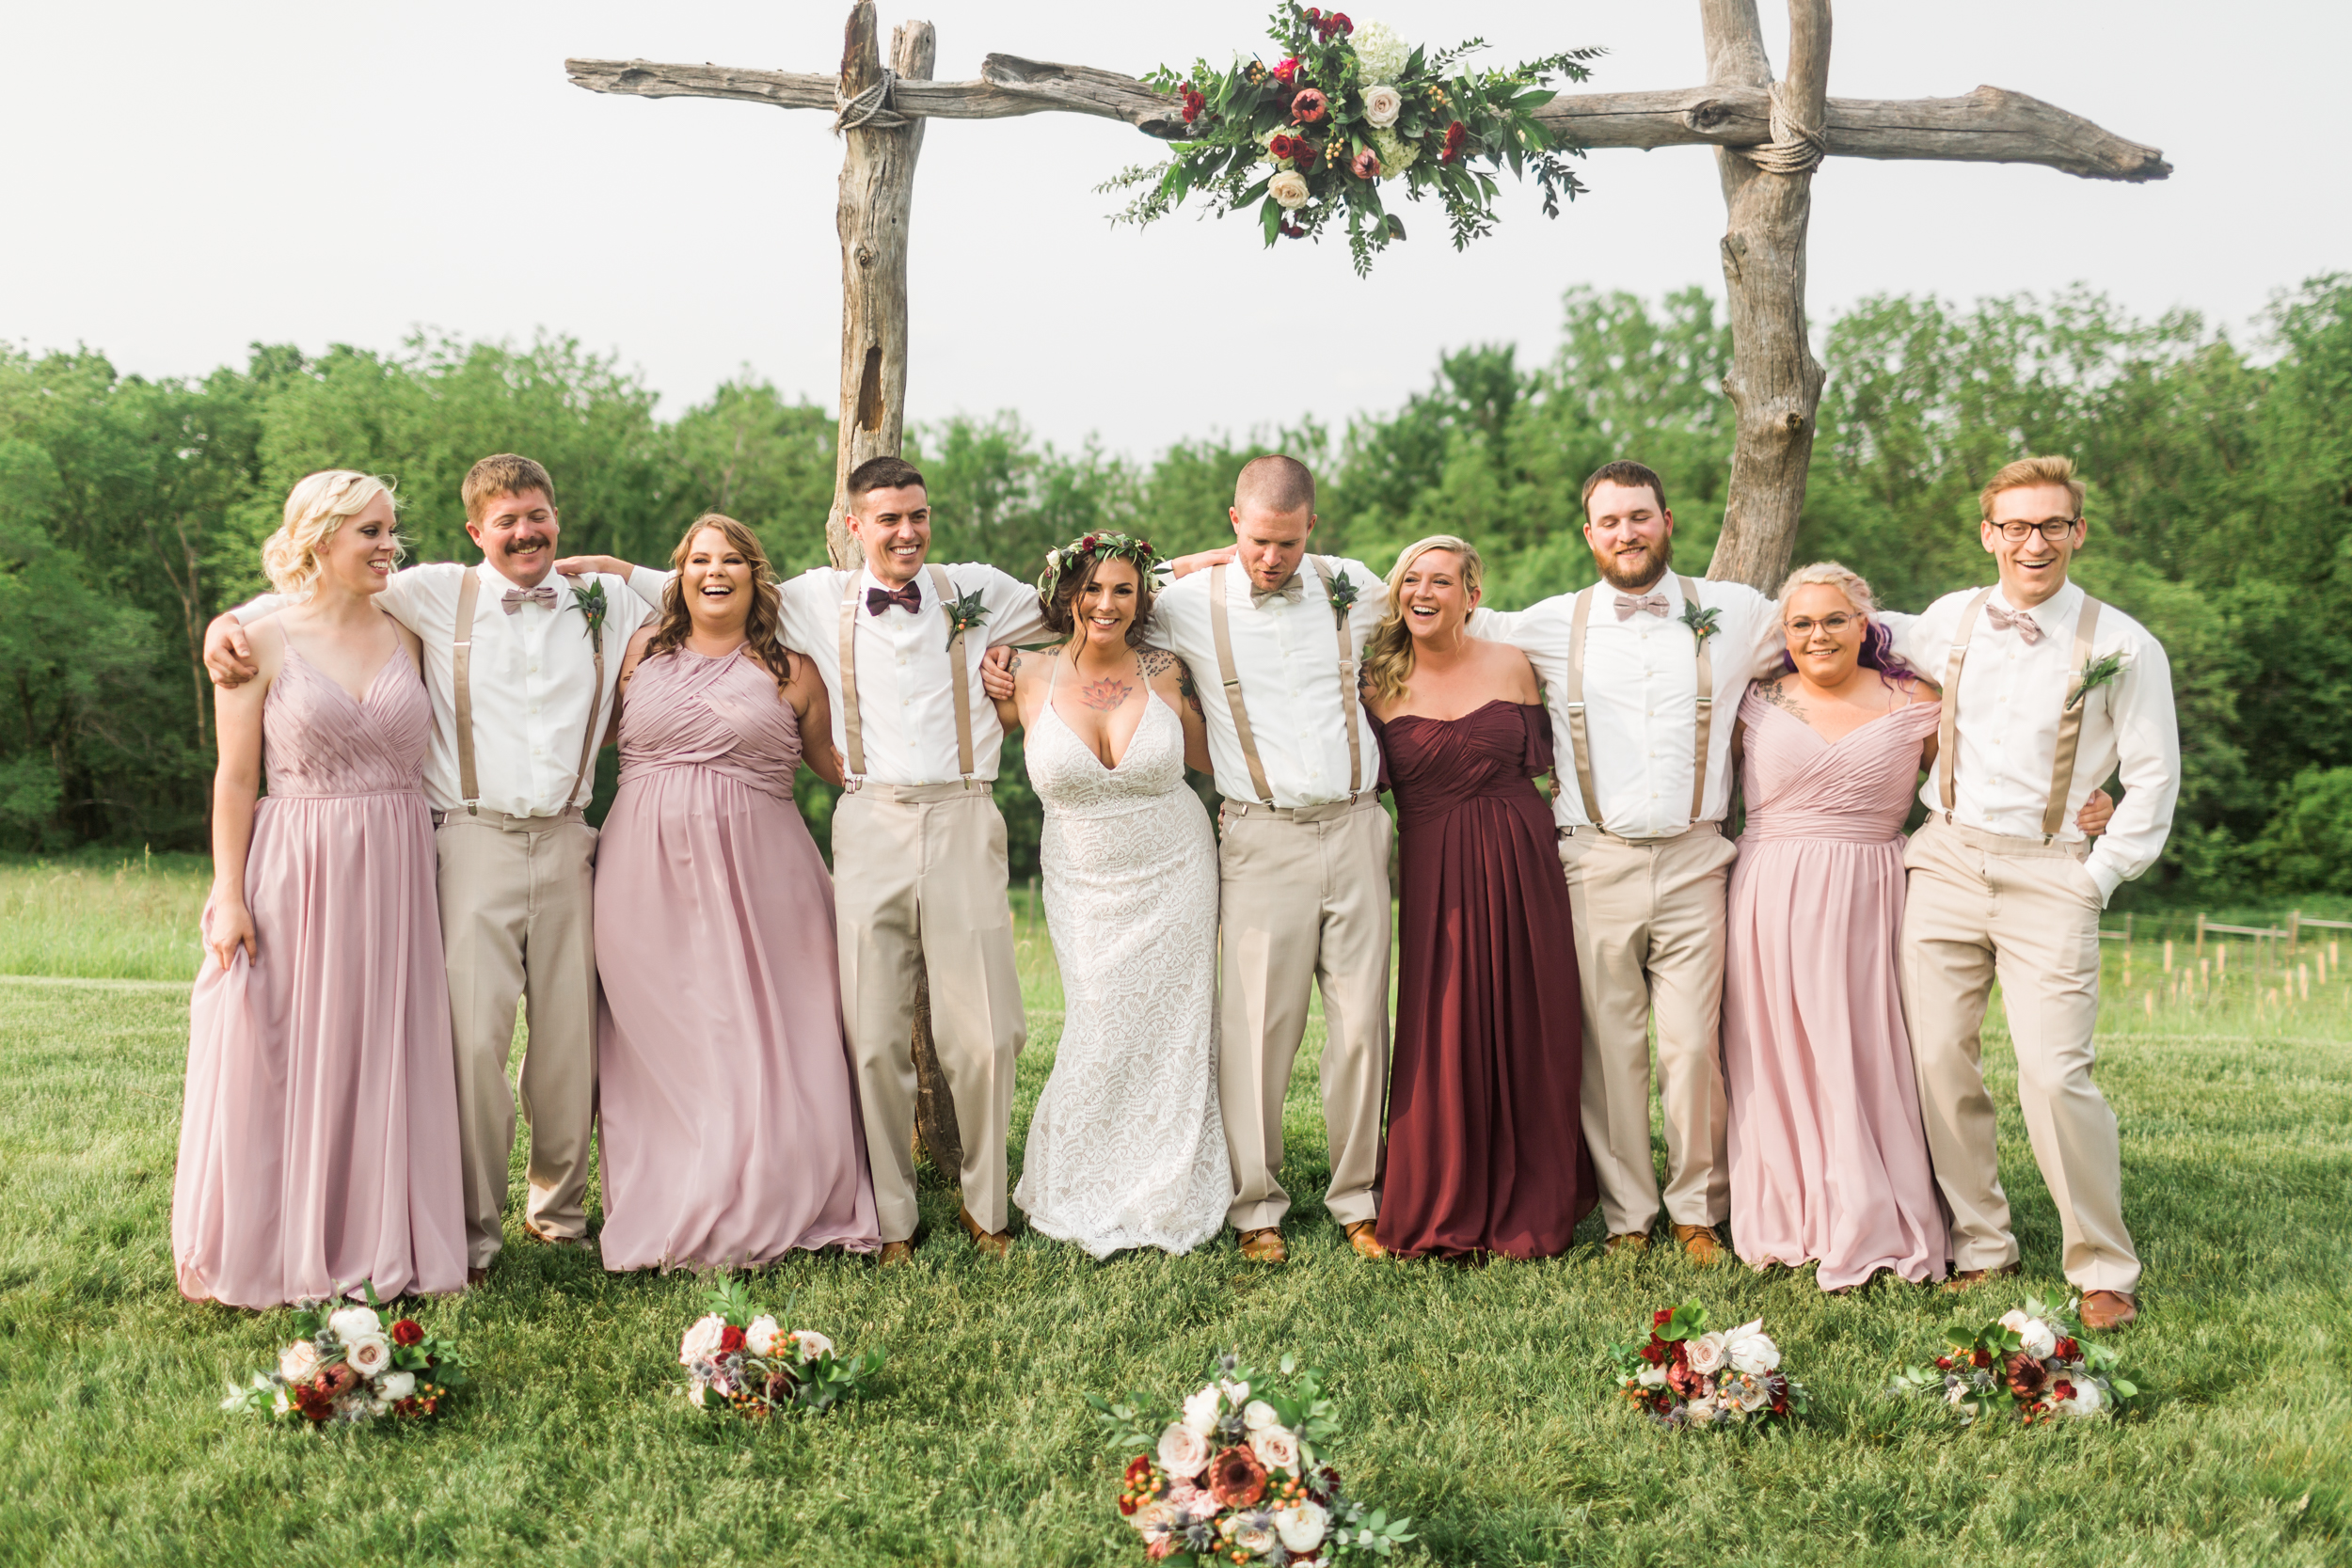 romanticbarnwedding-64.jpg